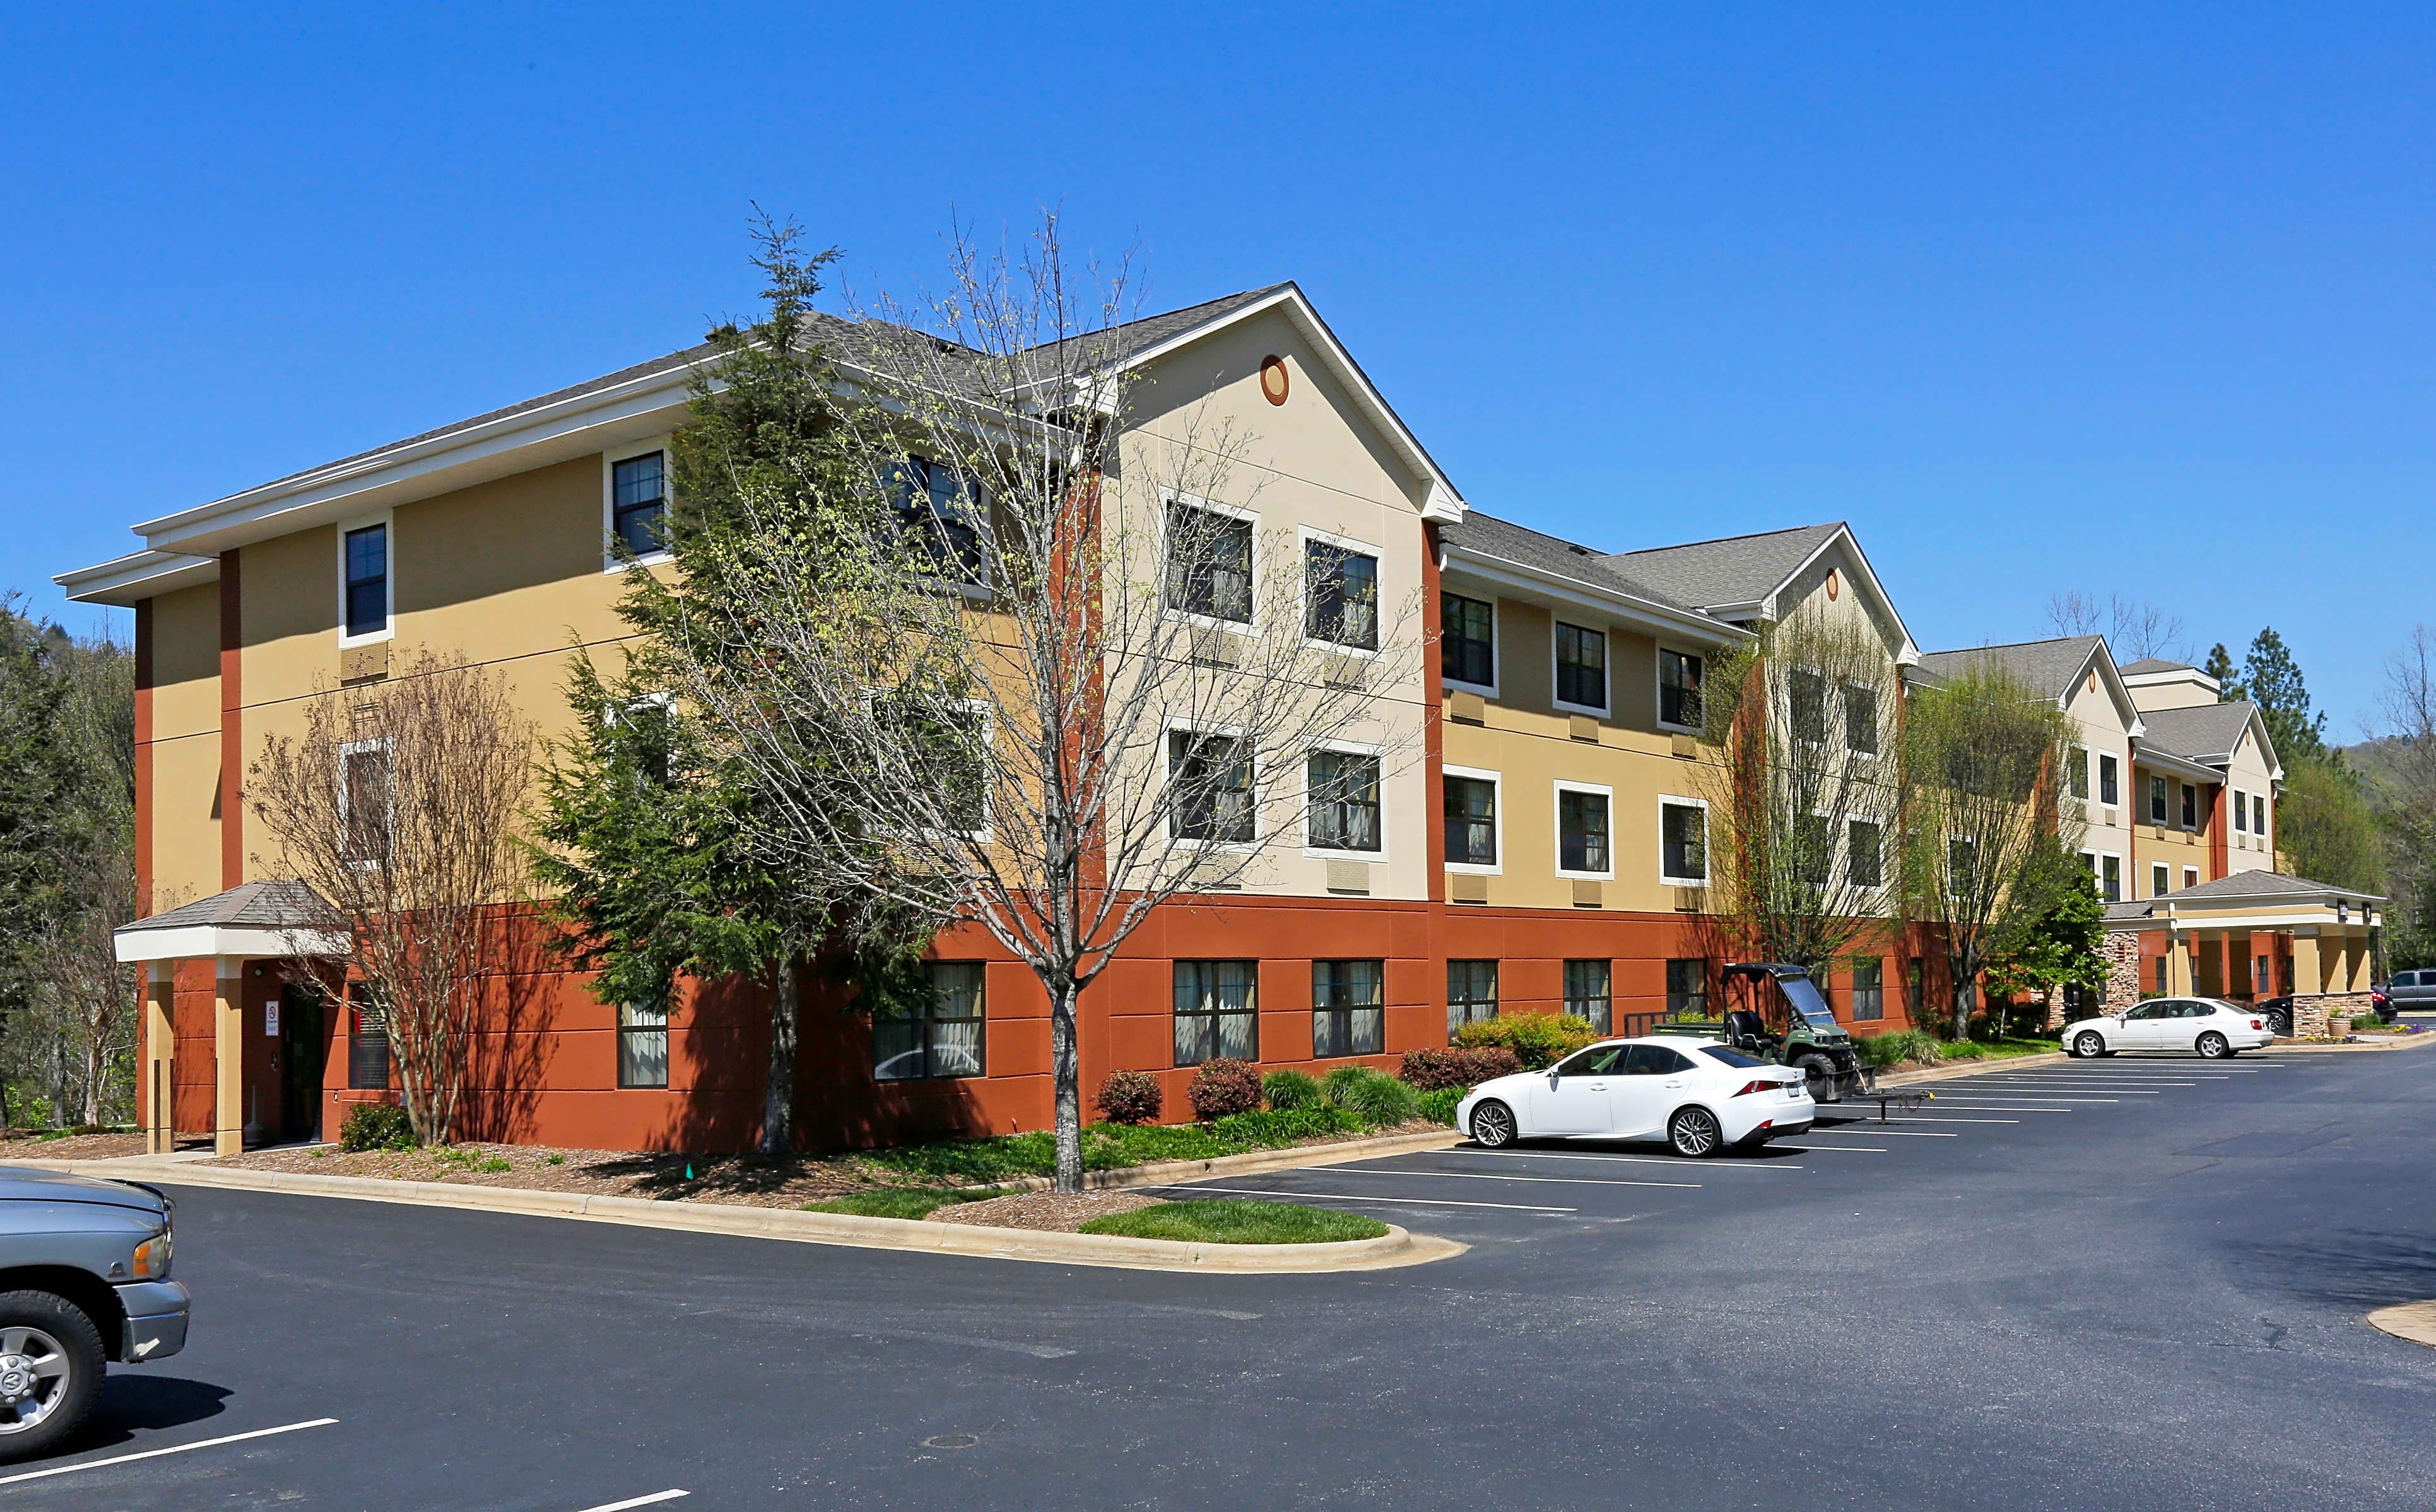 Apartments Near Montreat Furnished Studio - Asheville - Tunnel Rd. for Montreat College Students in Montreat, NC